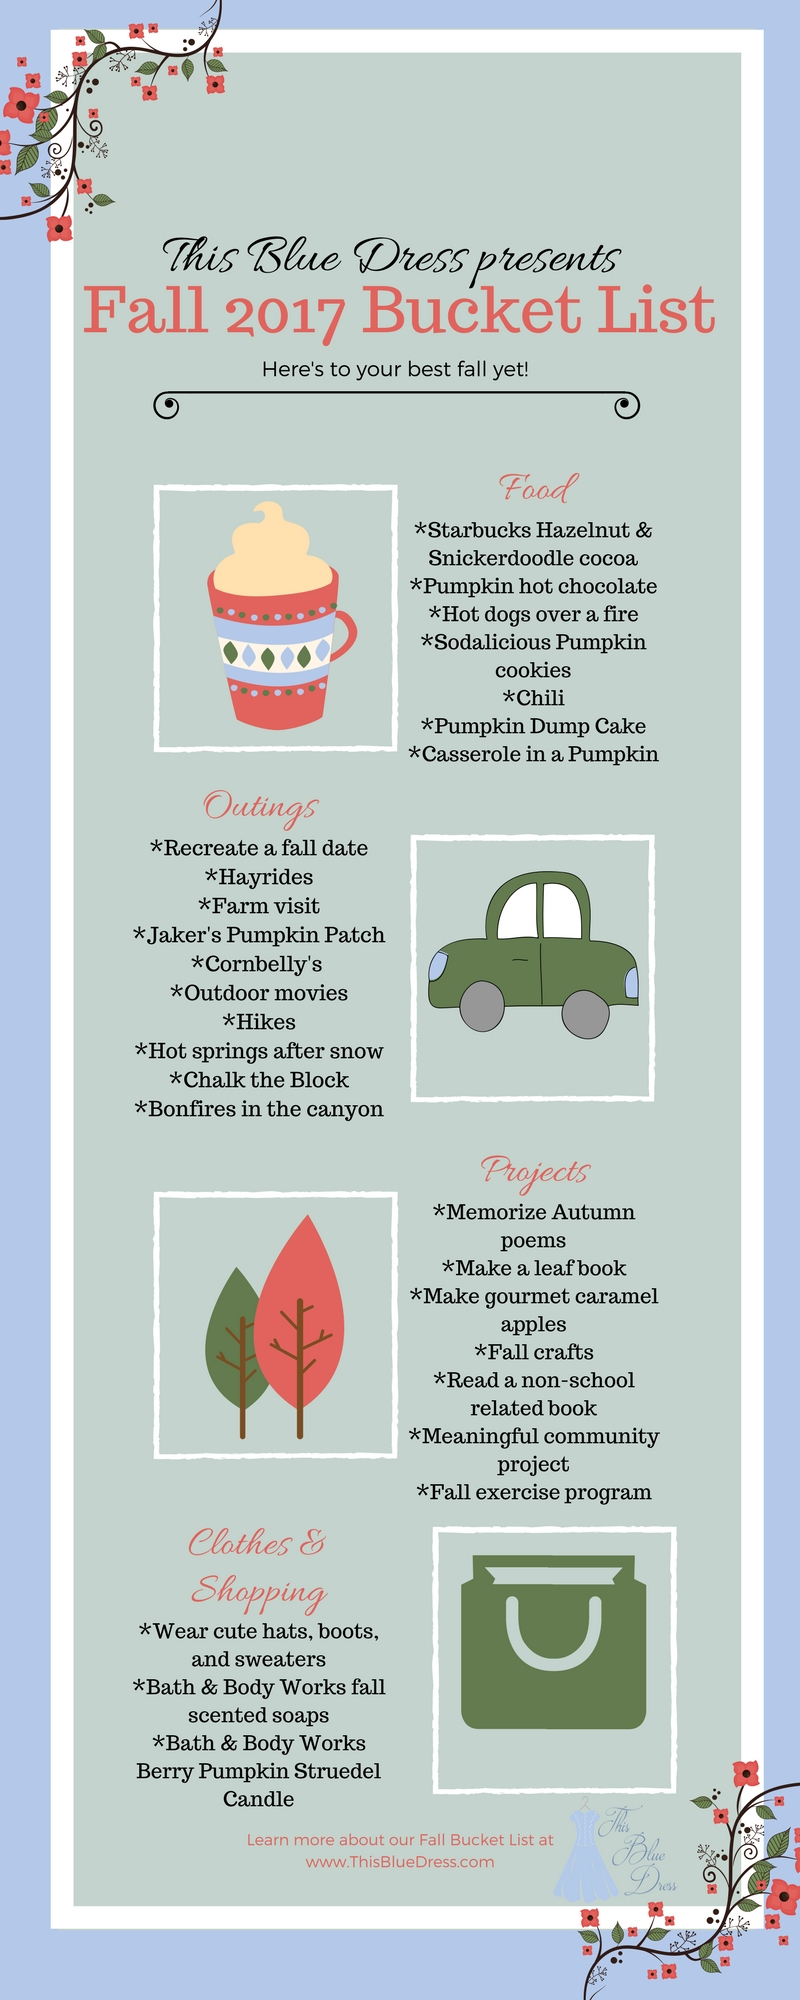 This Blue Dress fall bucket list infographic